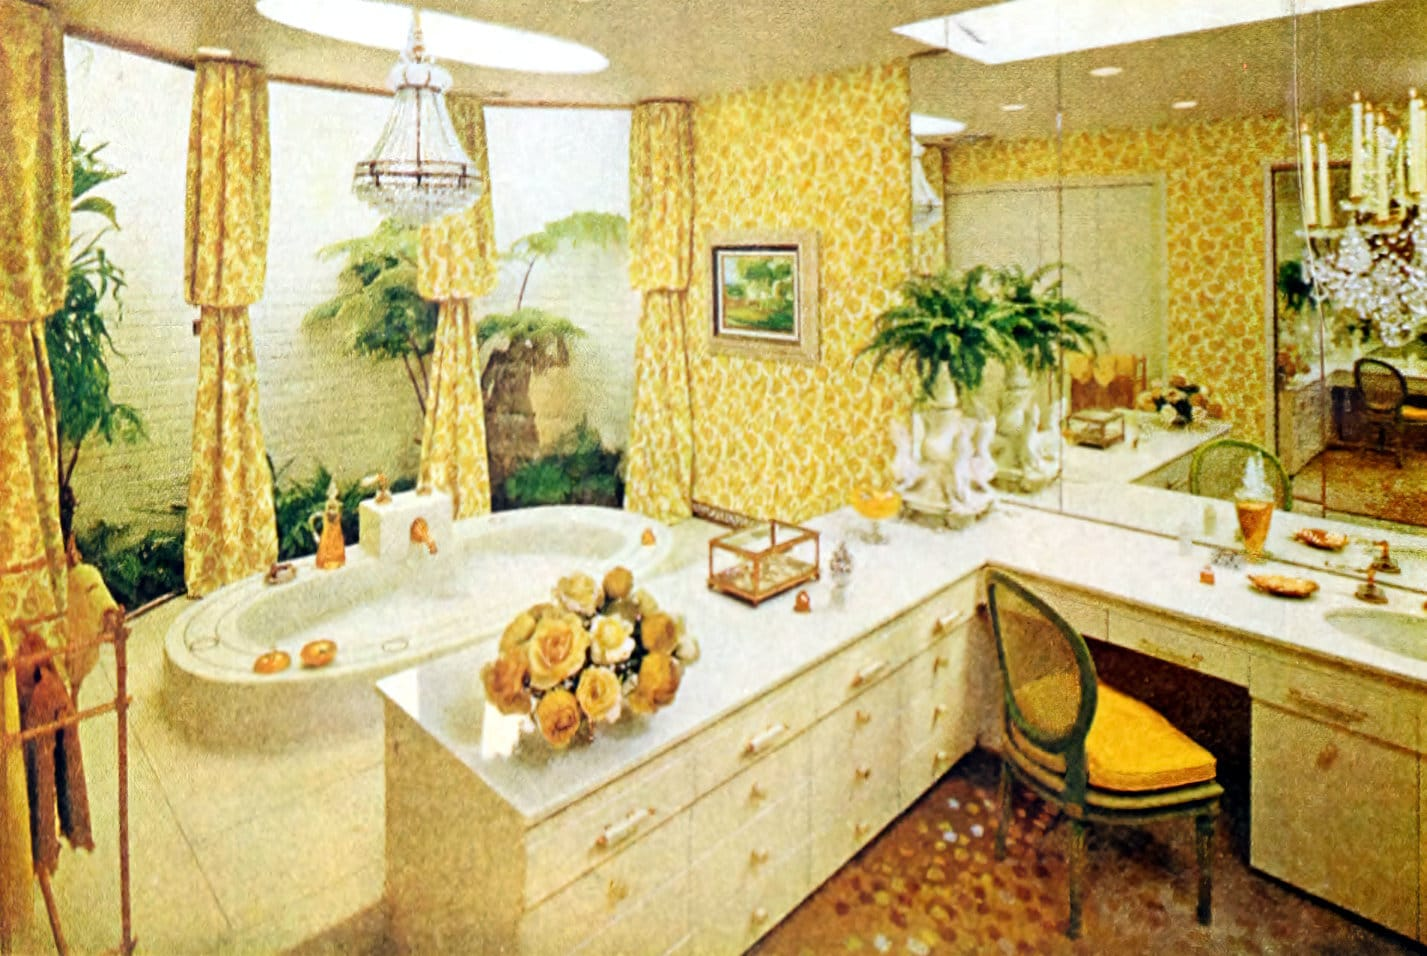 Vintage yellow 1960s bathroom decor with a feminine feel and dressing area